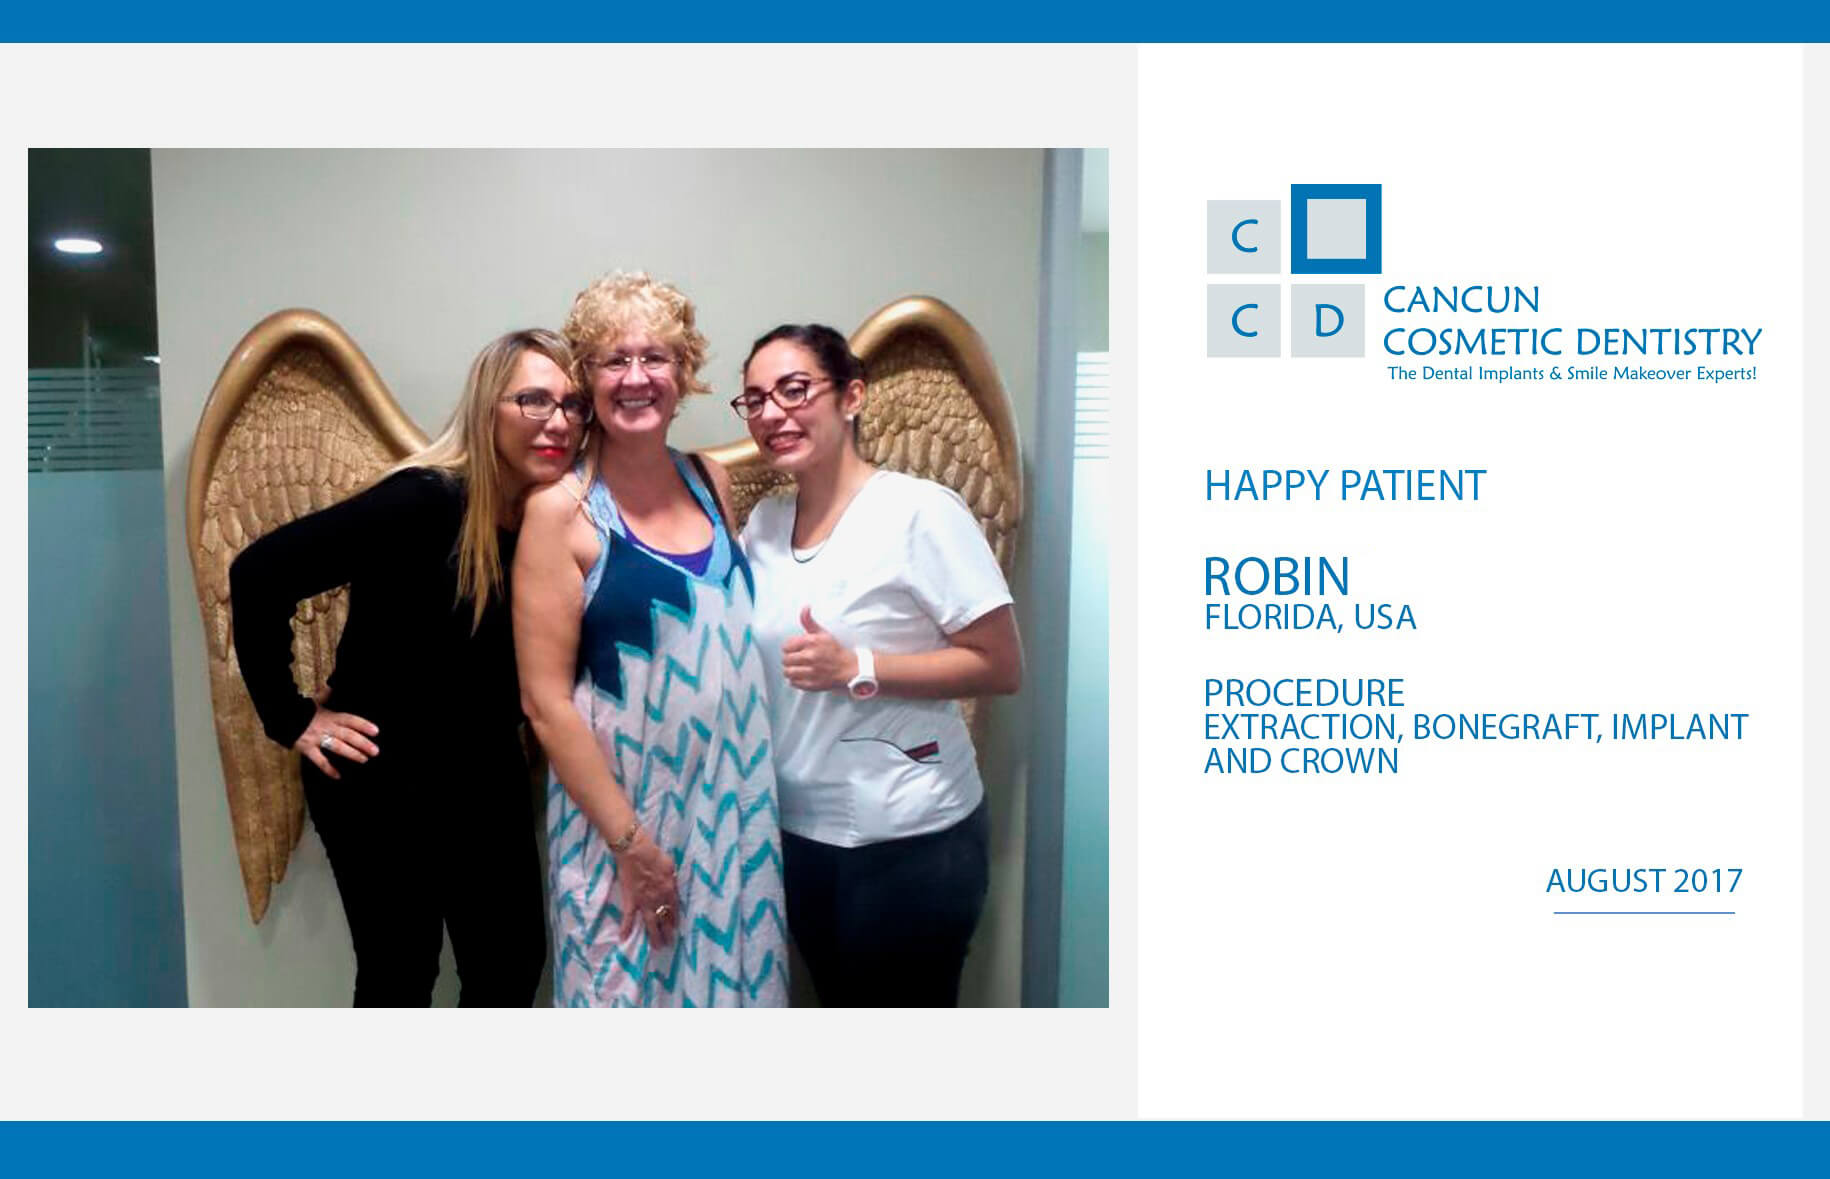 We keep getting new happy patients! – Cancun Cosmetic Dentistry